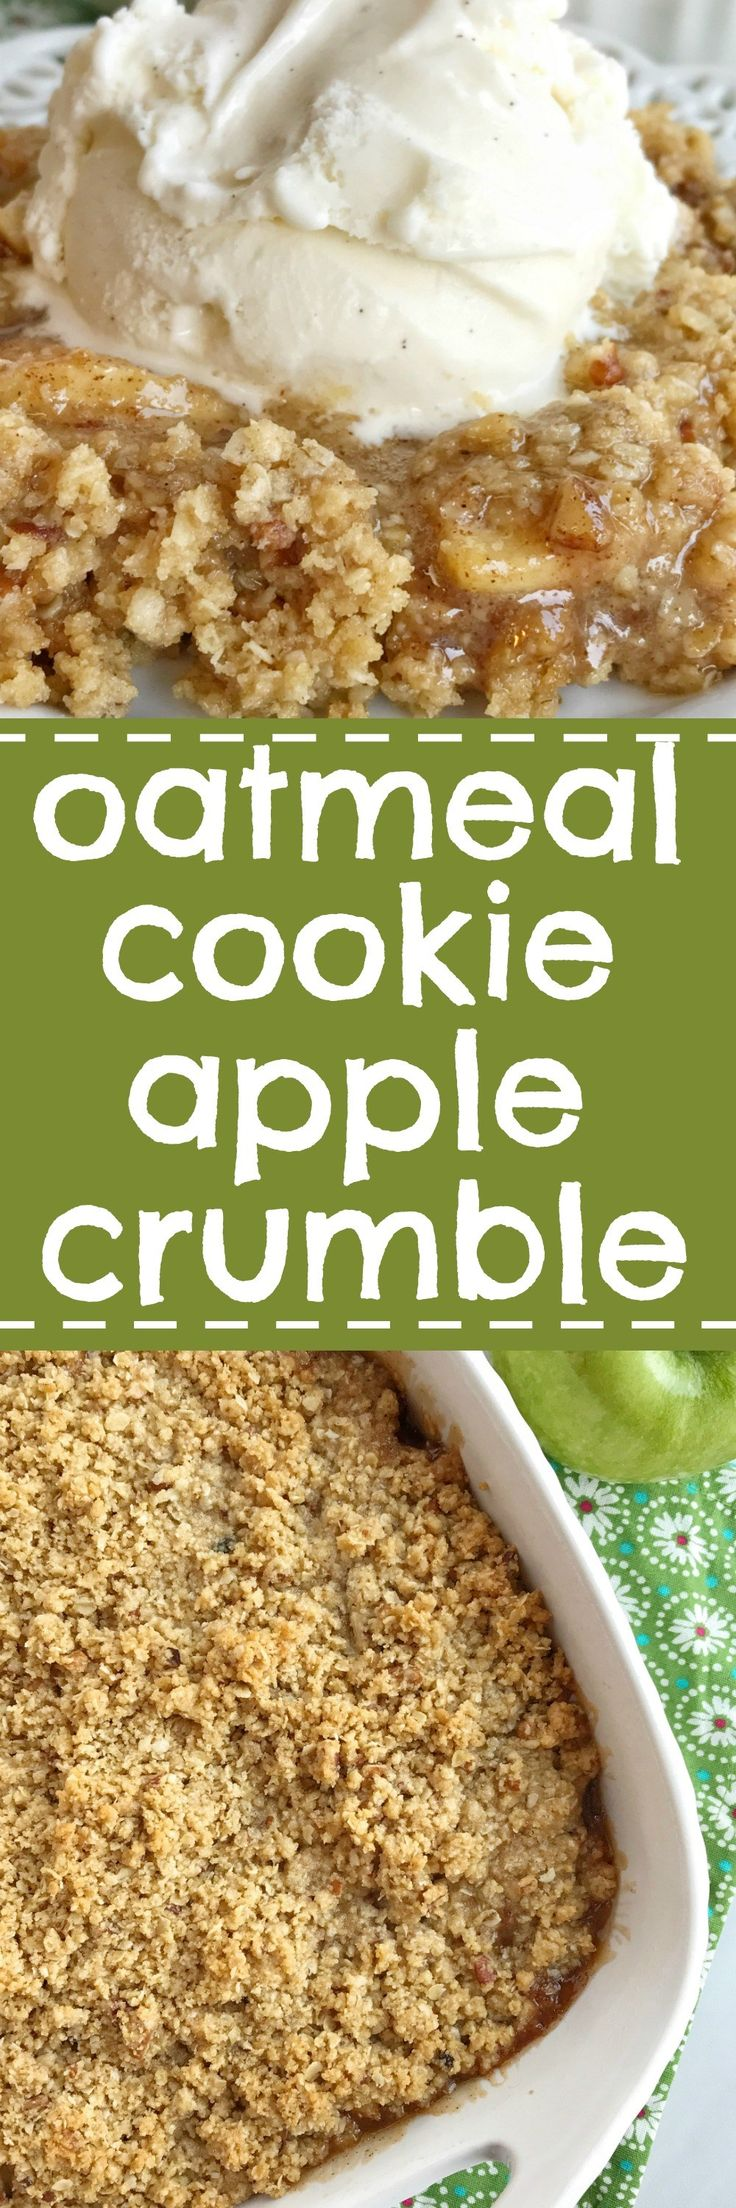 Oatmeal cookie apple crumble is the most delicious Fall dessert. Tender, sweet & tart apples covered in cinnamon and butter and topped with an easy oatmeal cookie crumble topping. Serve it with a scoop of vanilla ice cream for an incredible dessert | togetherasfamily.com #apple #applecrisp #dessert #oatmealcookie